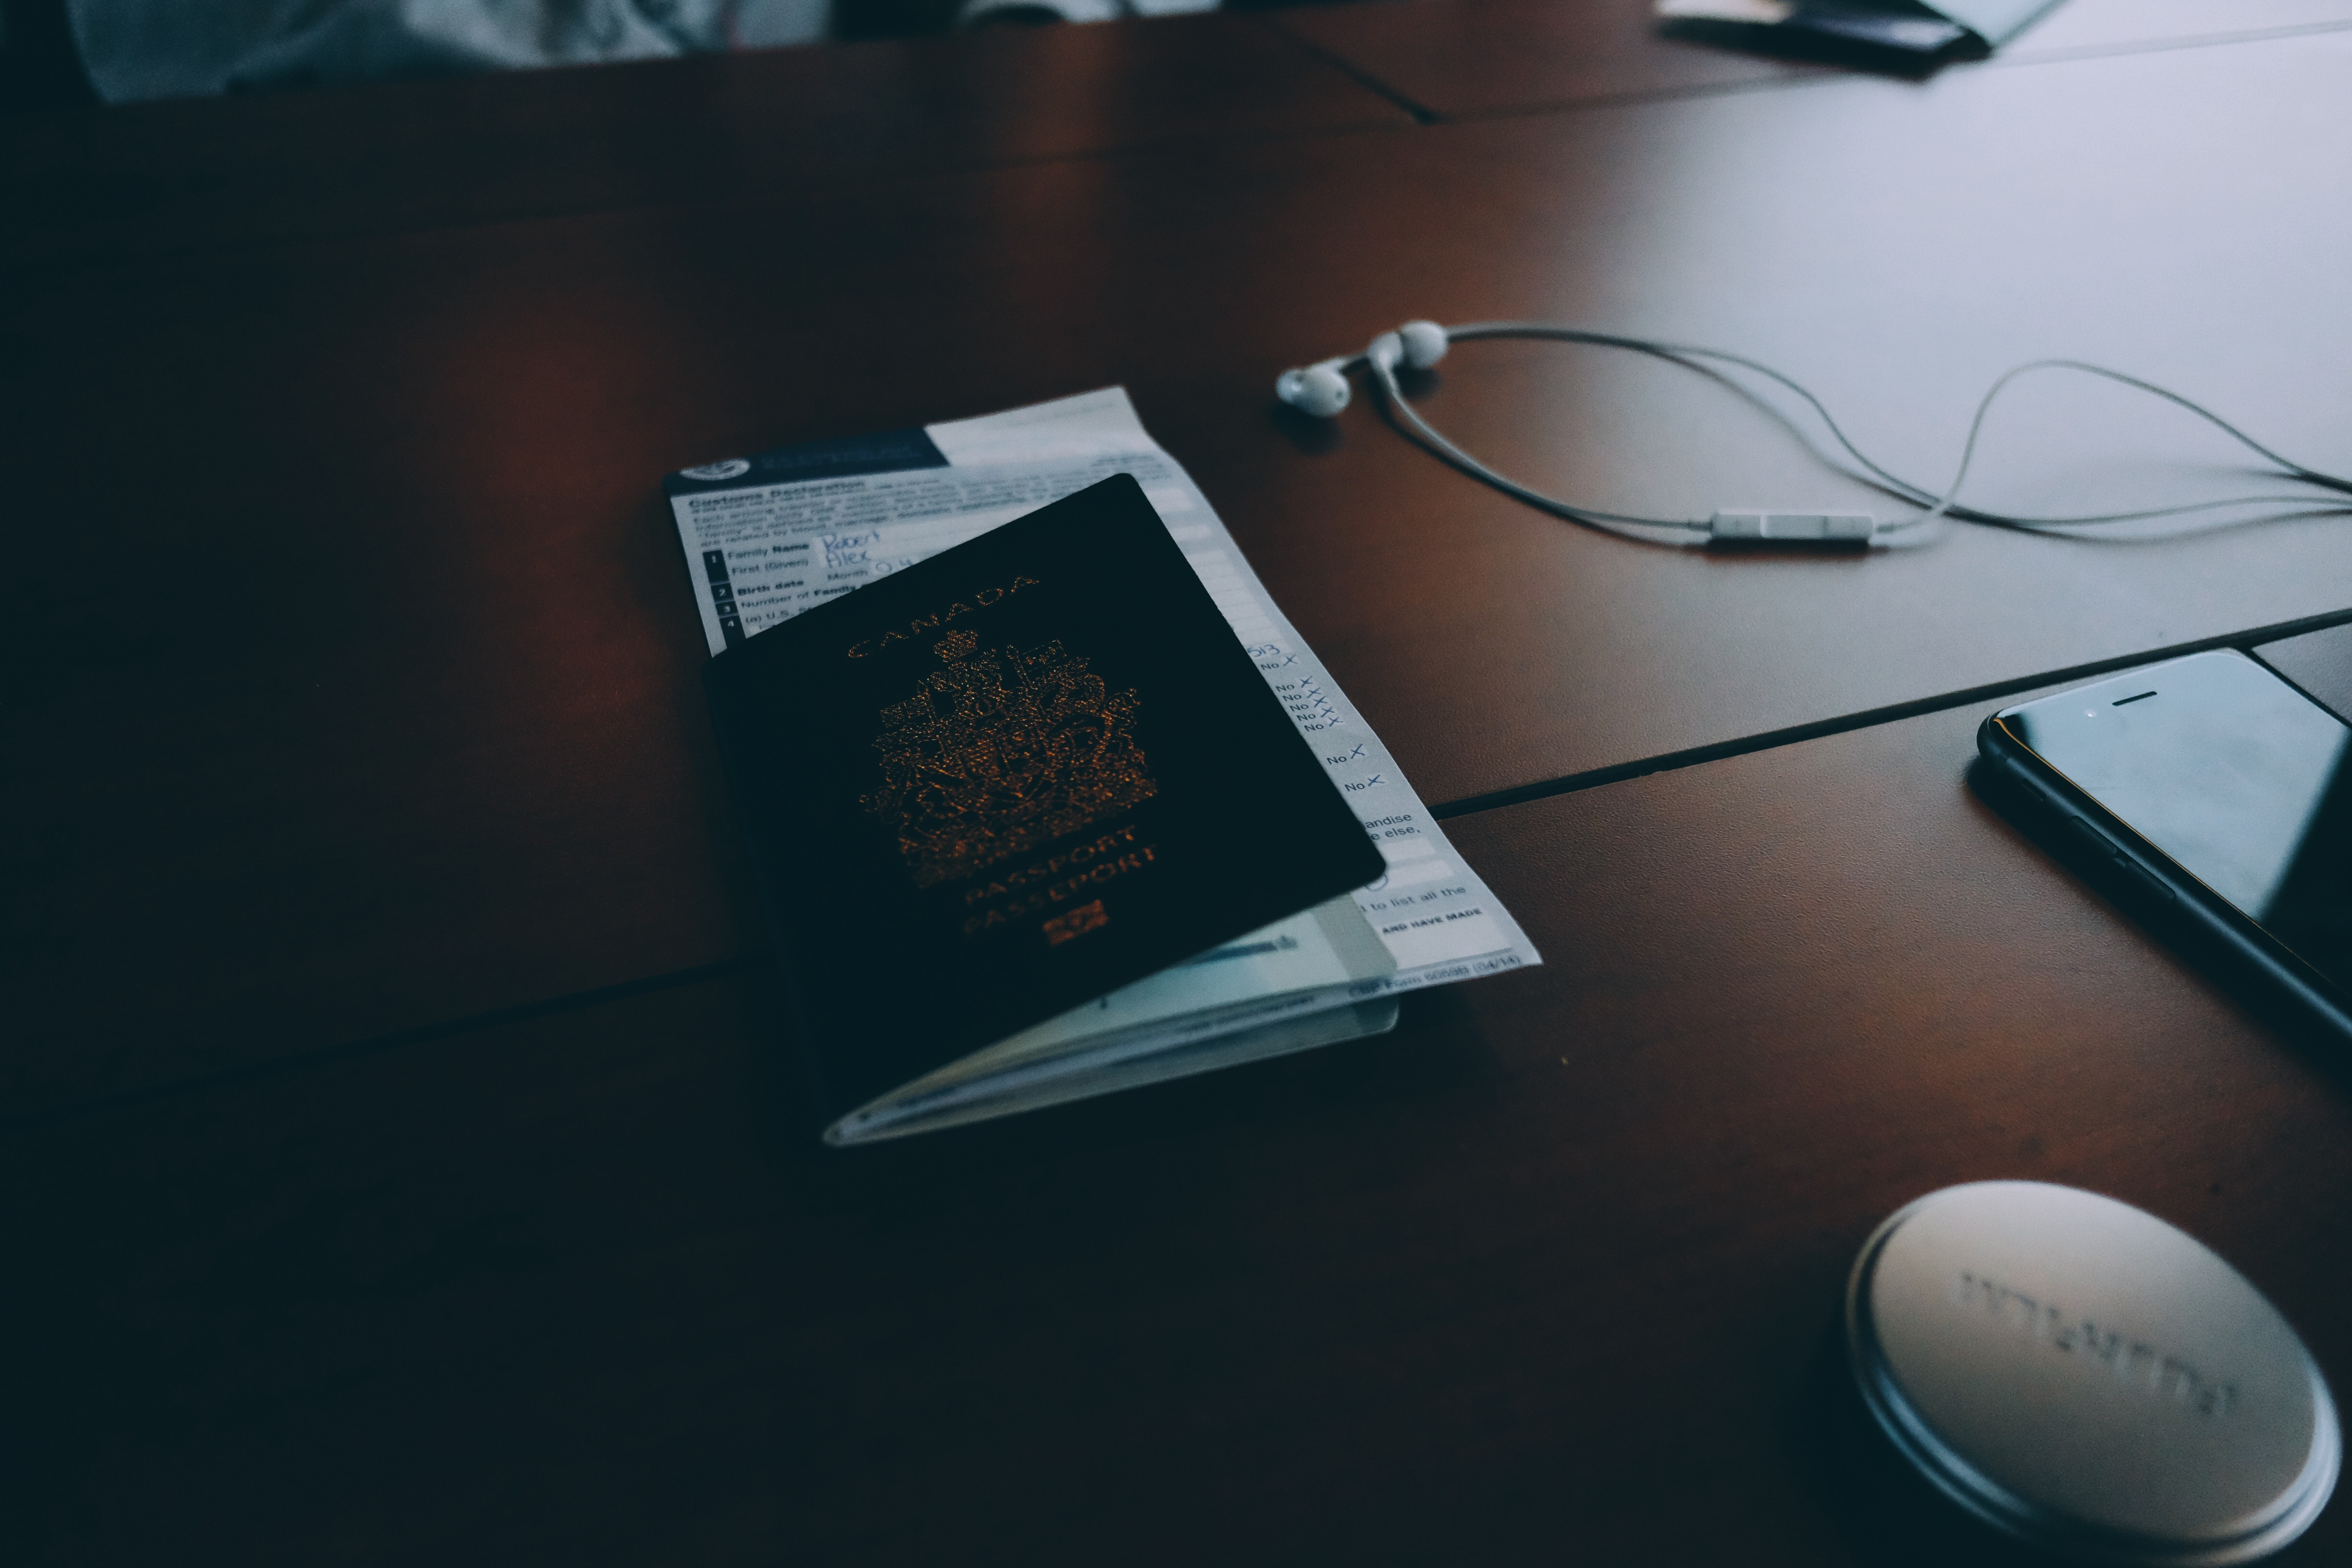 Passport and documents on desk near phone and headphones